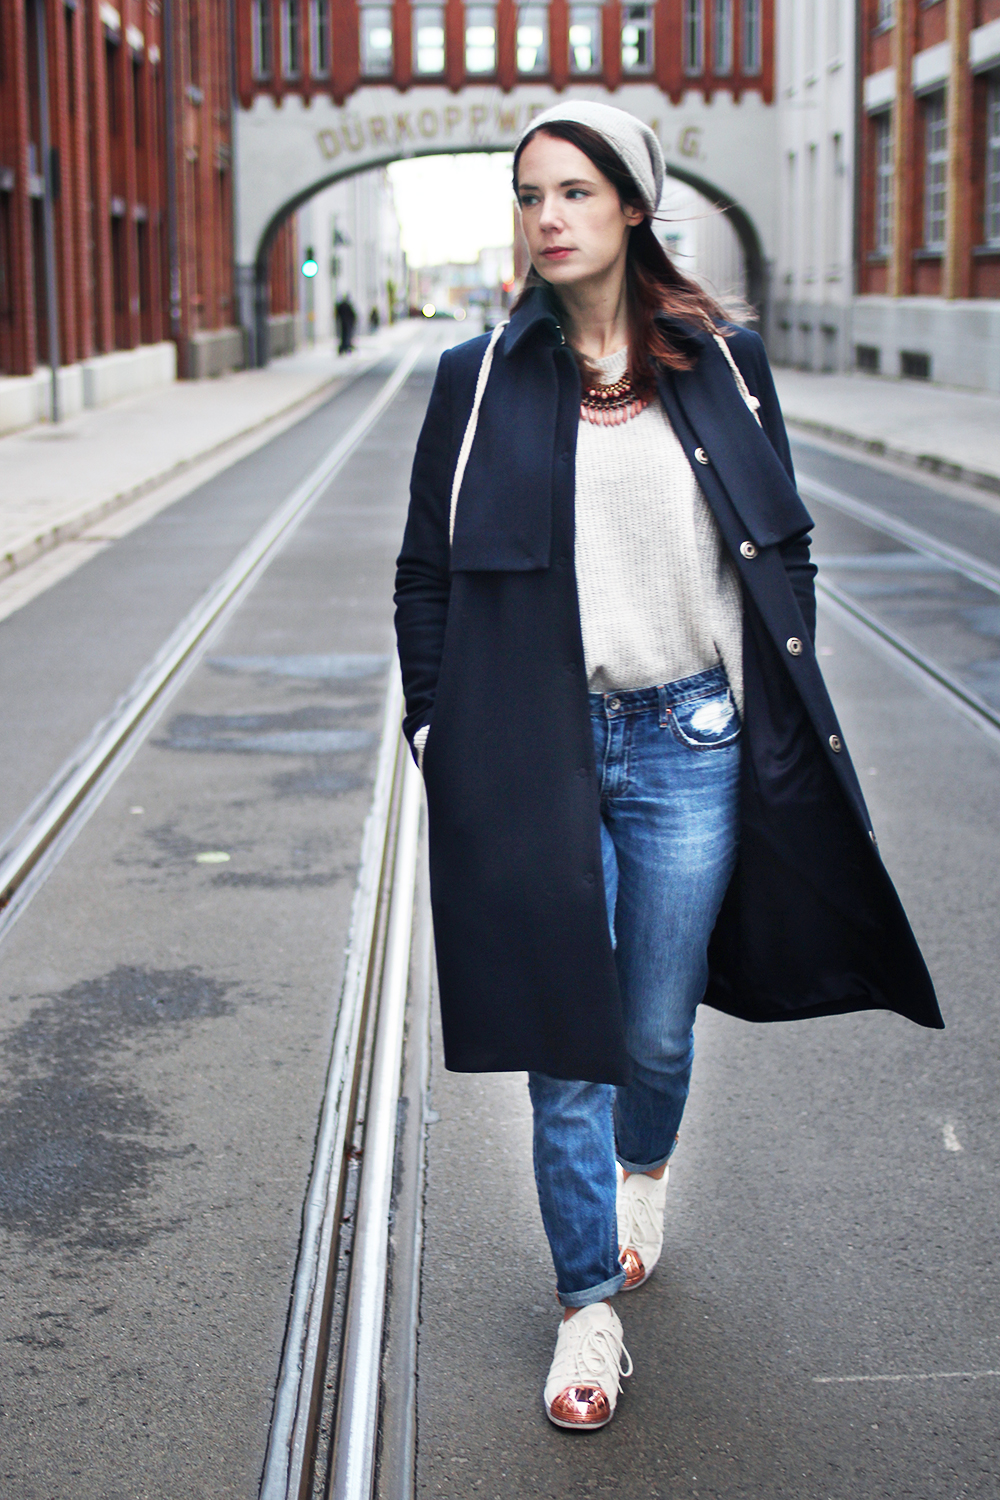 herbstoutfit-mit-jeans-und-mantel-sneakers